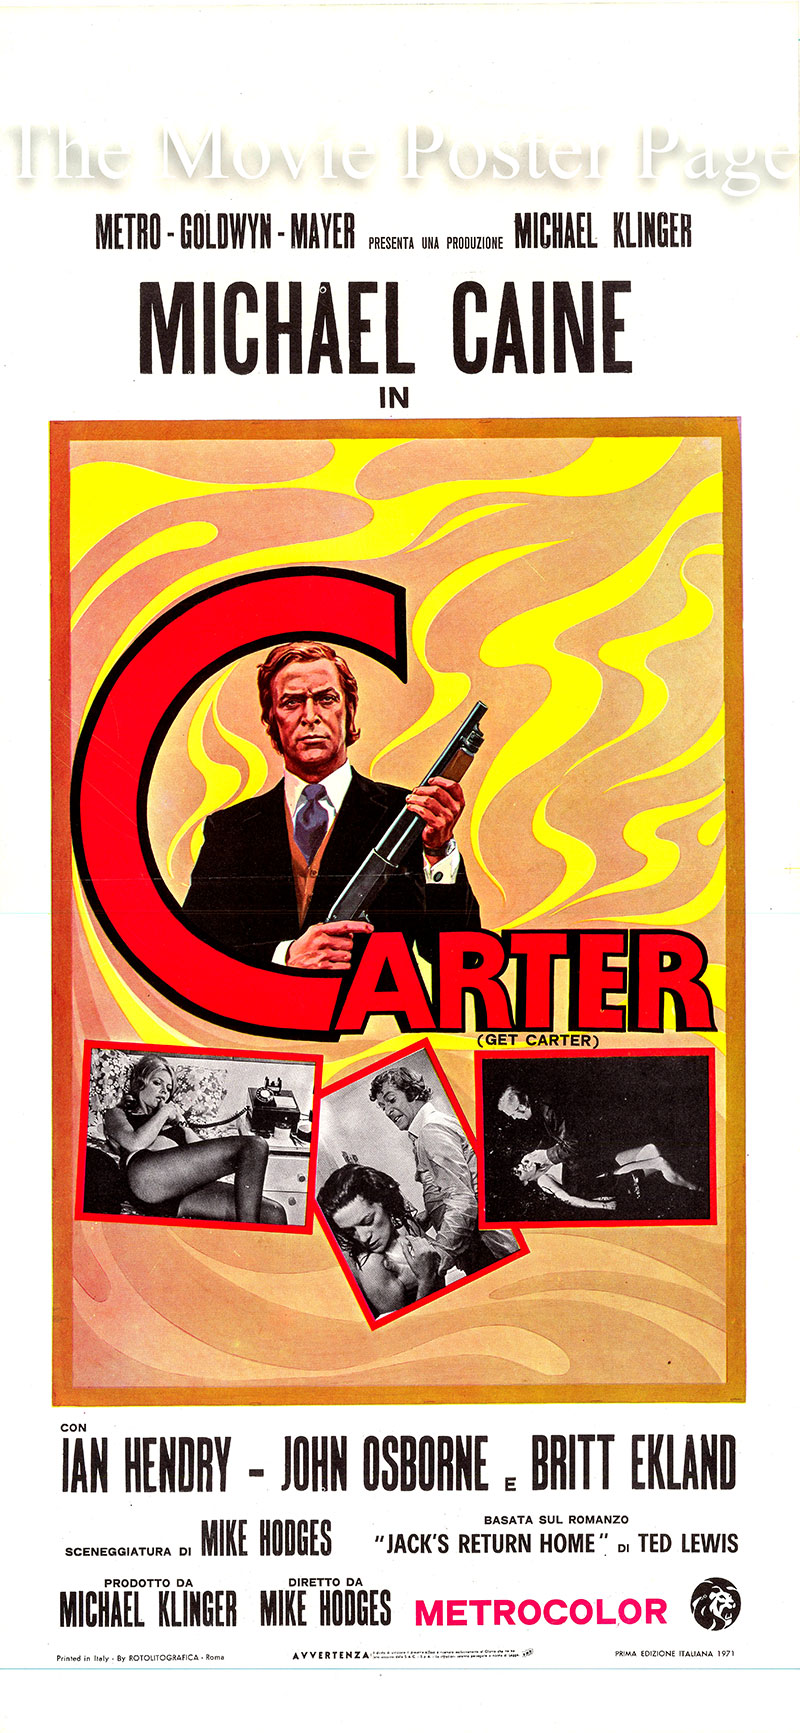 This is an Italian locandina for the 1971 Mike Hodges film <i>Get Carter</i> based on the 1970 Ted Lewis novel <i>Jack's Return Home</i> and starring Michael Caine as Jack Carter.